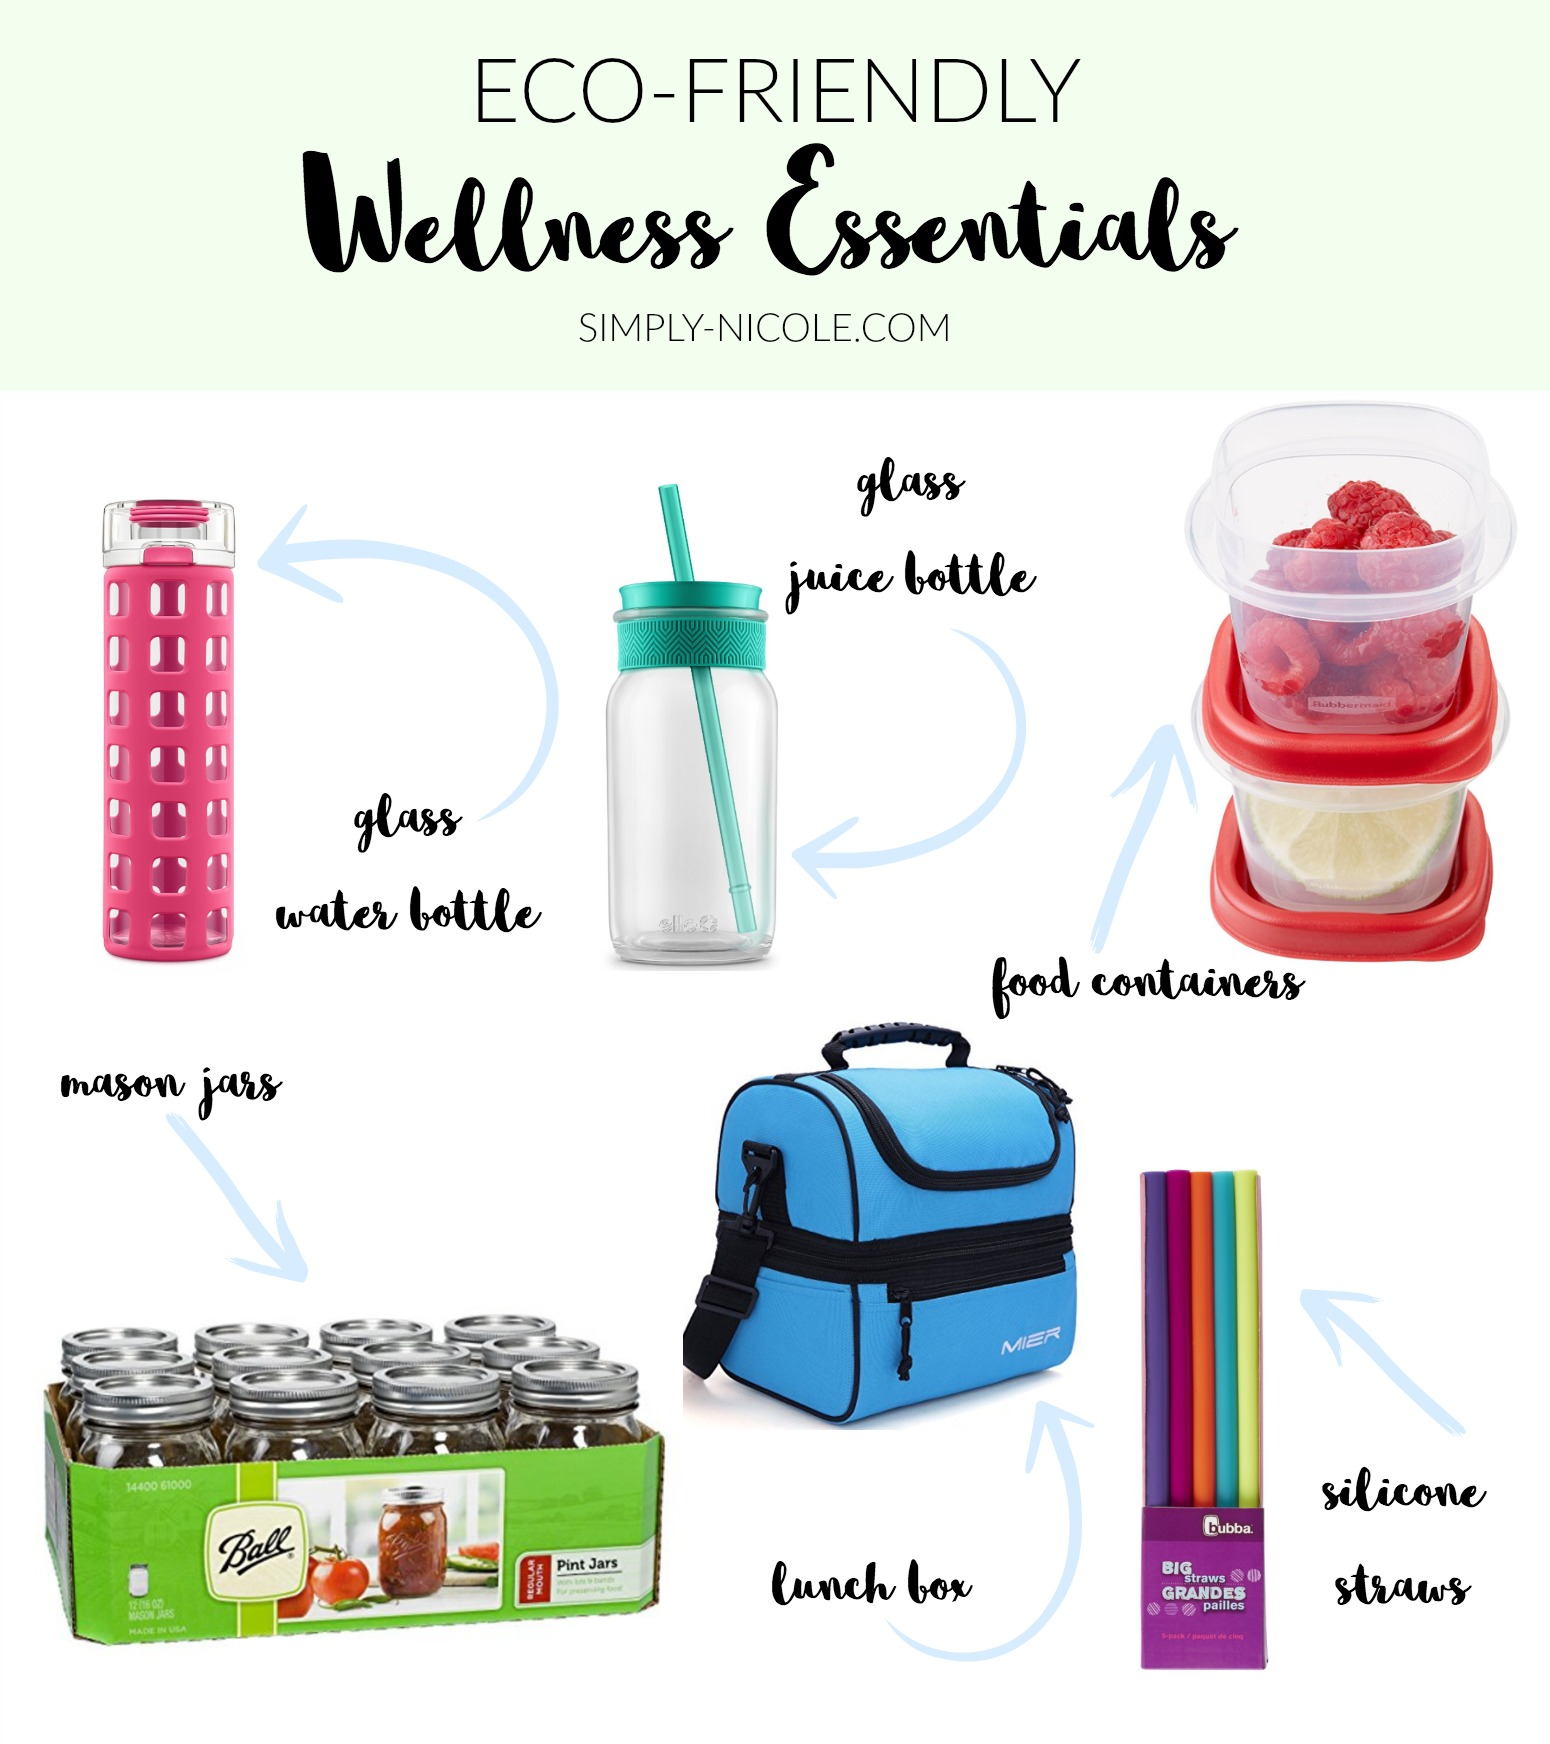 Eco-friendly wellness essentials on Simply Nicole